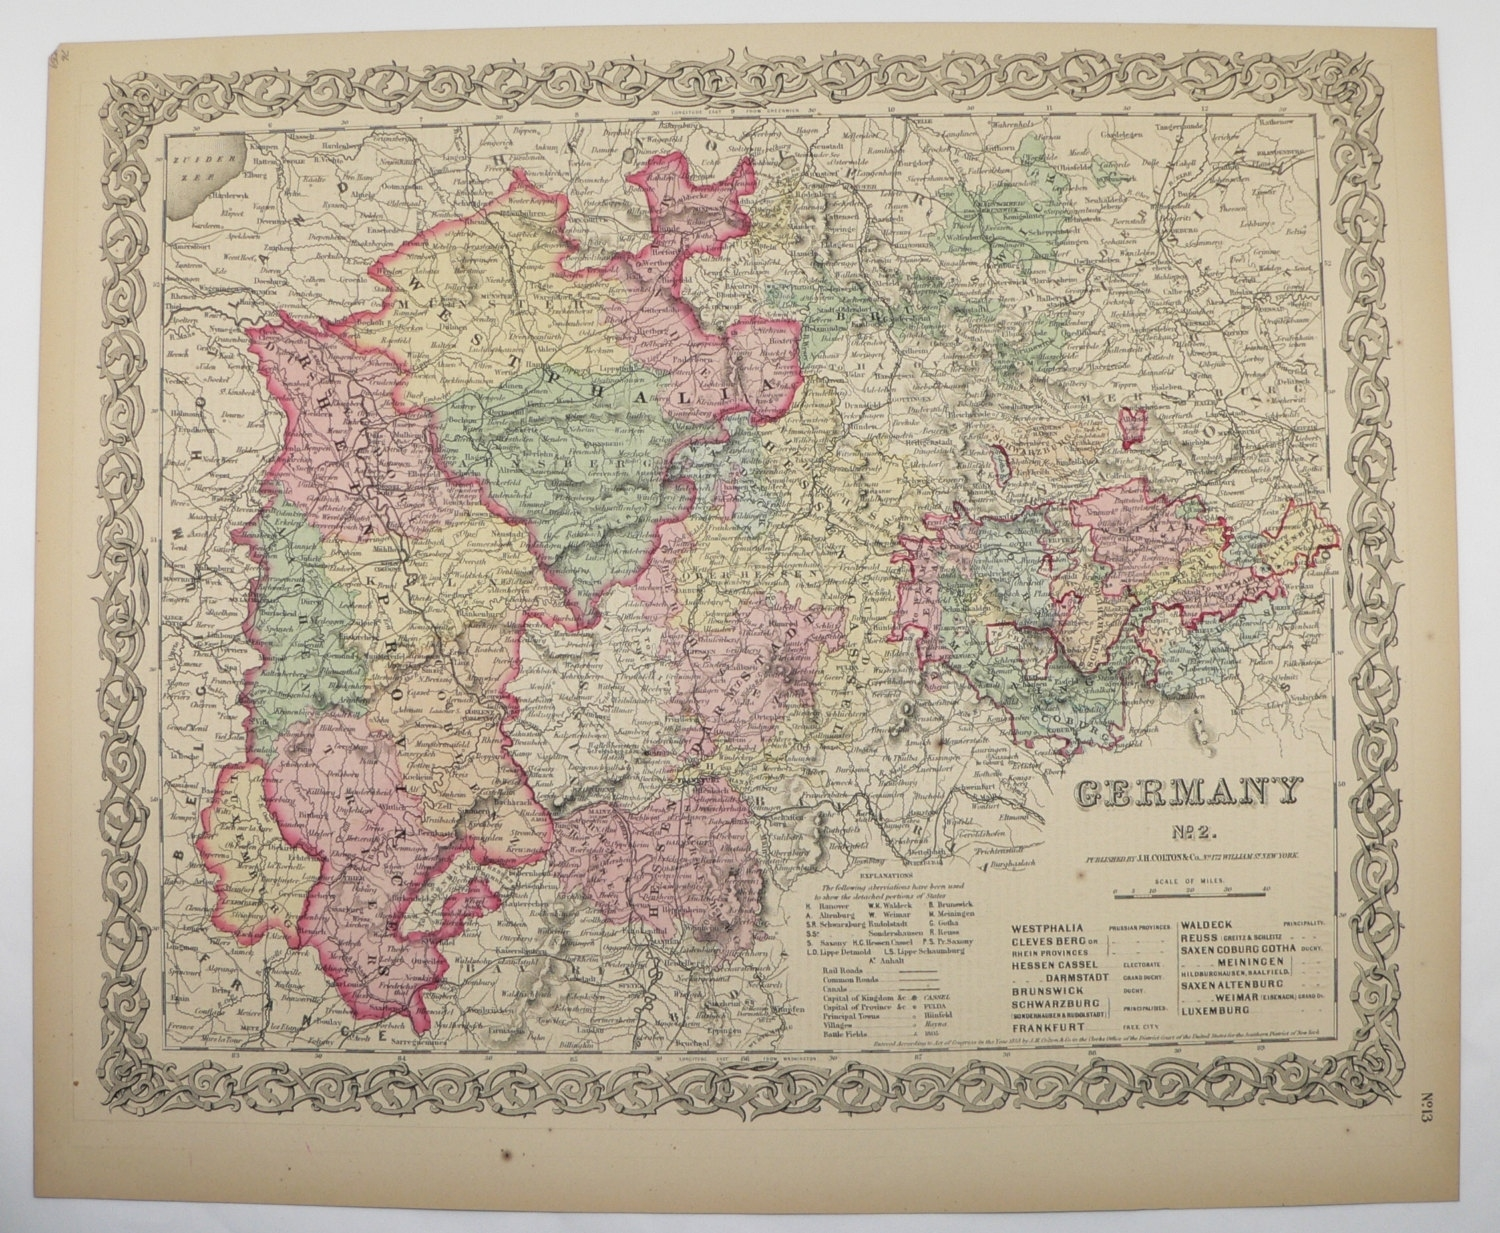 Nw Germany Map Original 1859 Colton Map, Old World Map, Historical Map,  Germany Wedding Gift For Couple, Antique Map, Vintage German Decor pertaining to Old World Map Of Germany